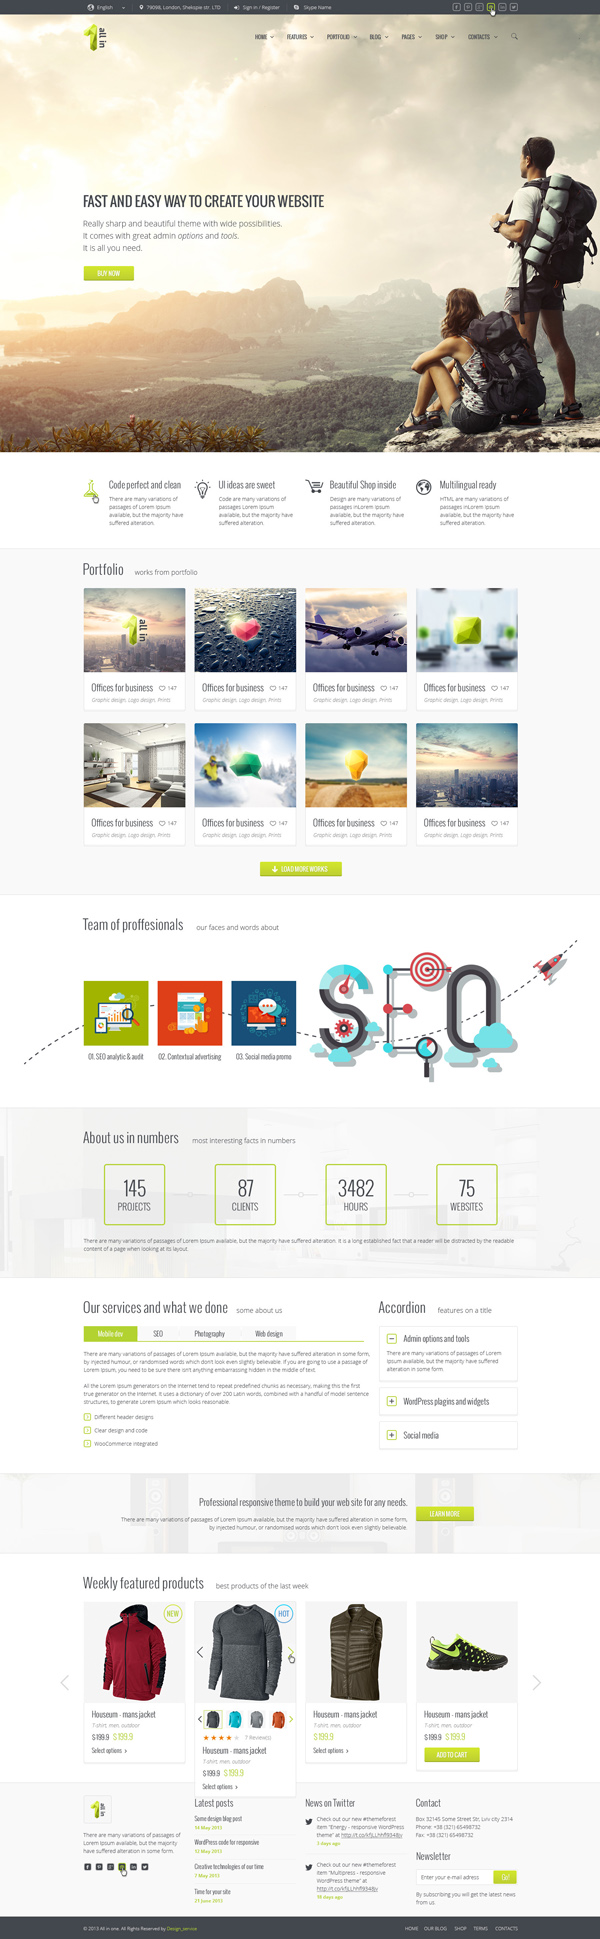 html5 one page website templates with ui ux experience design